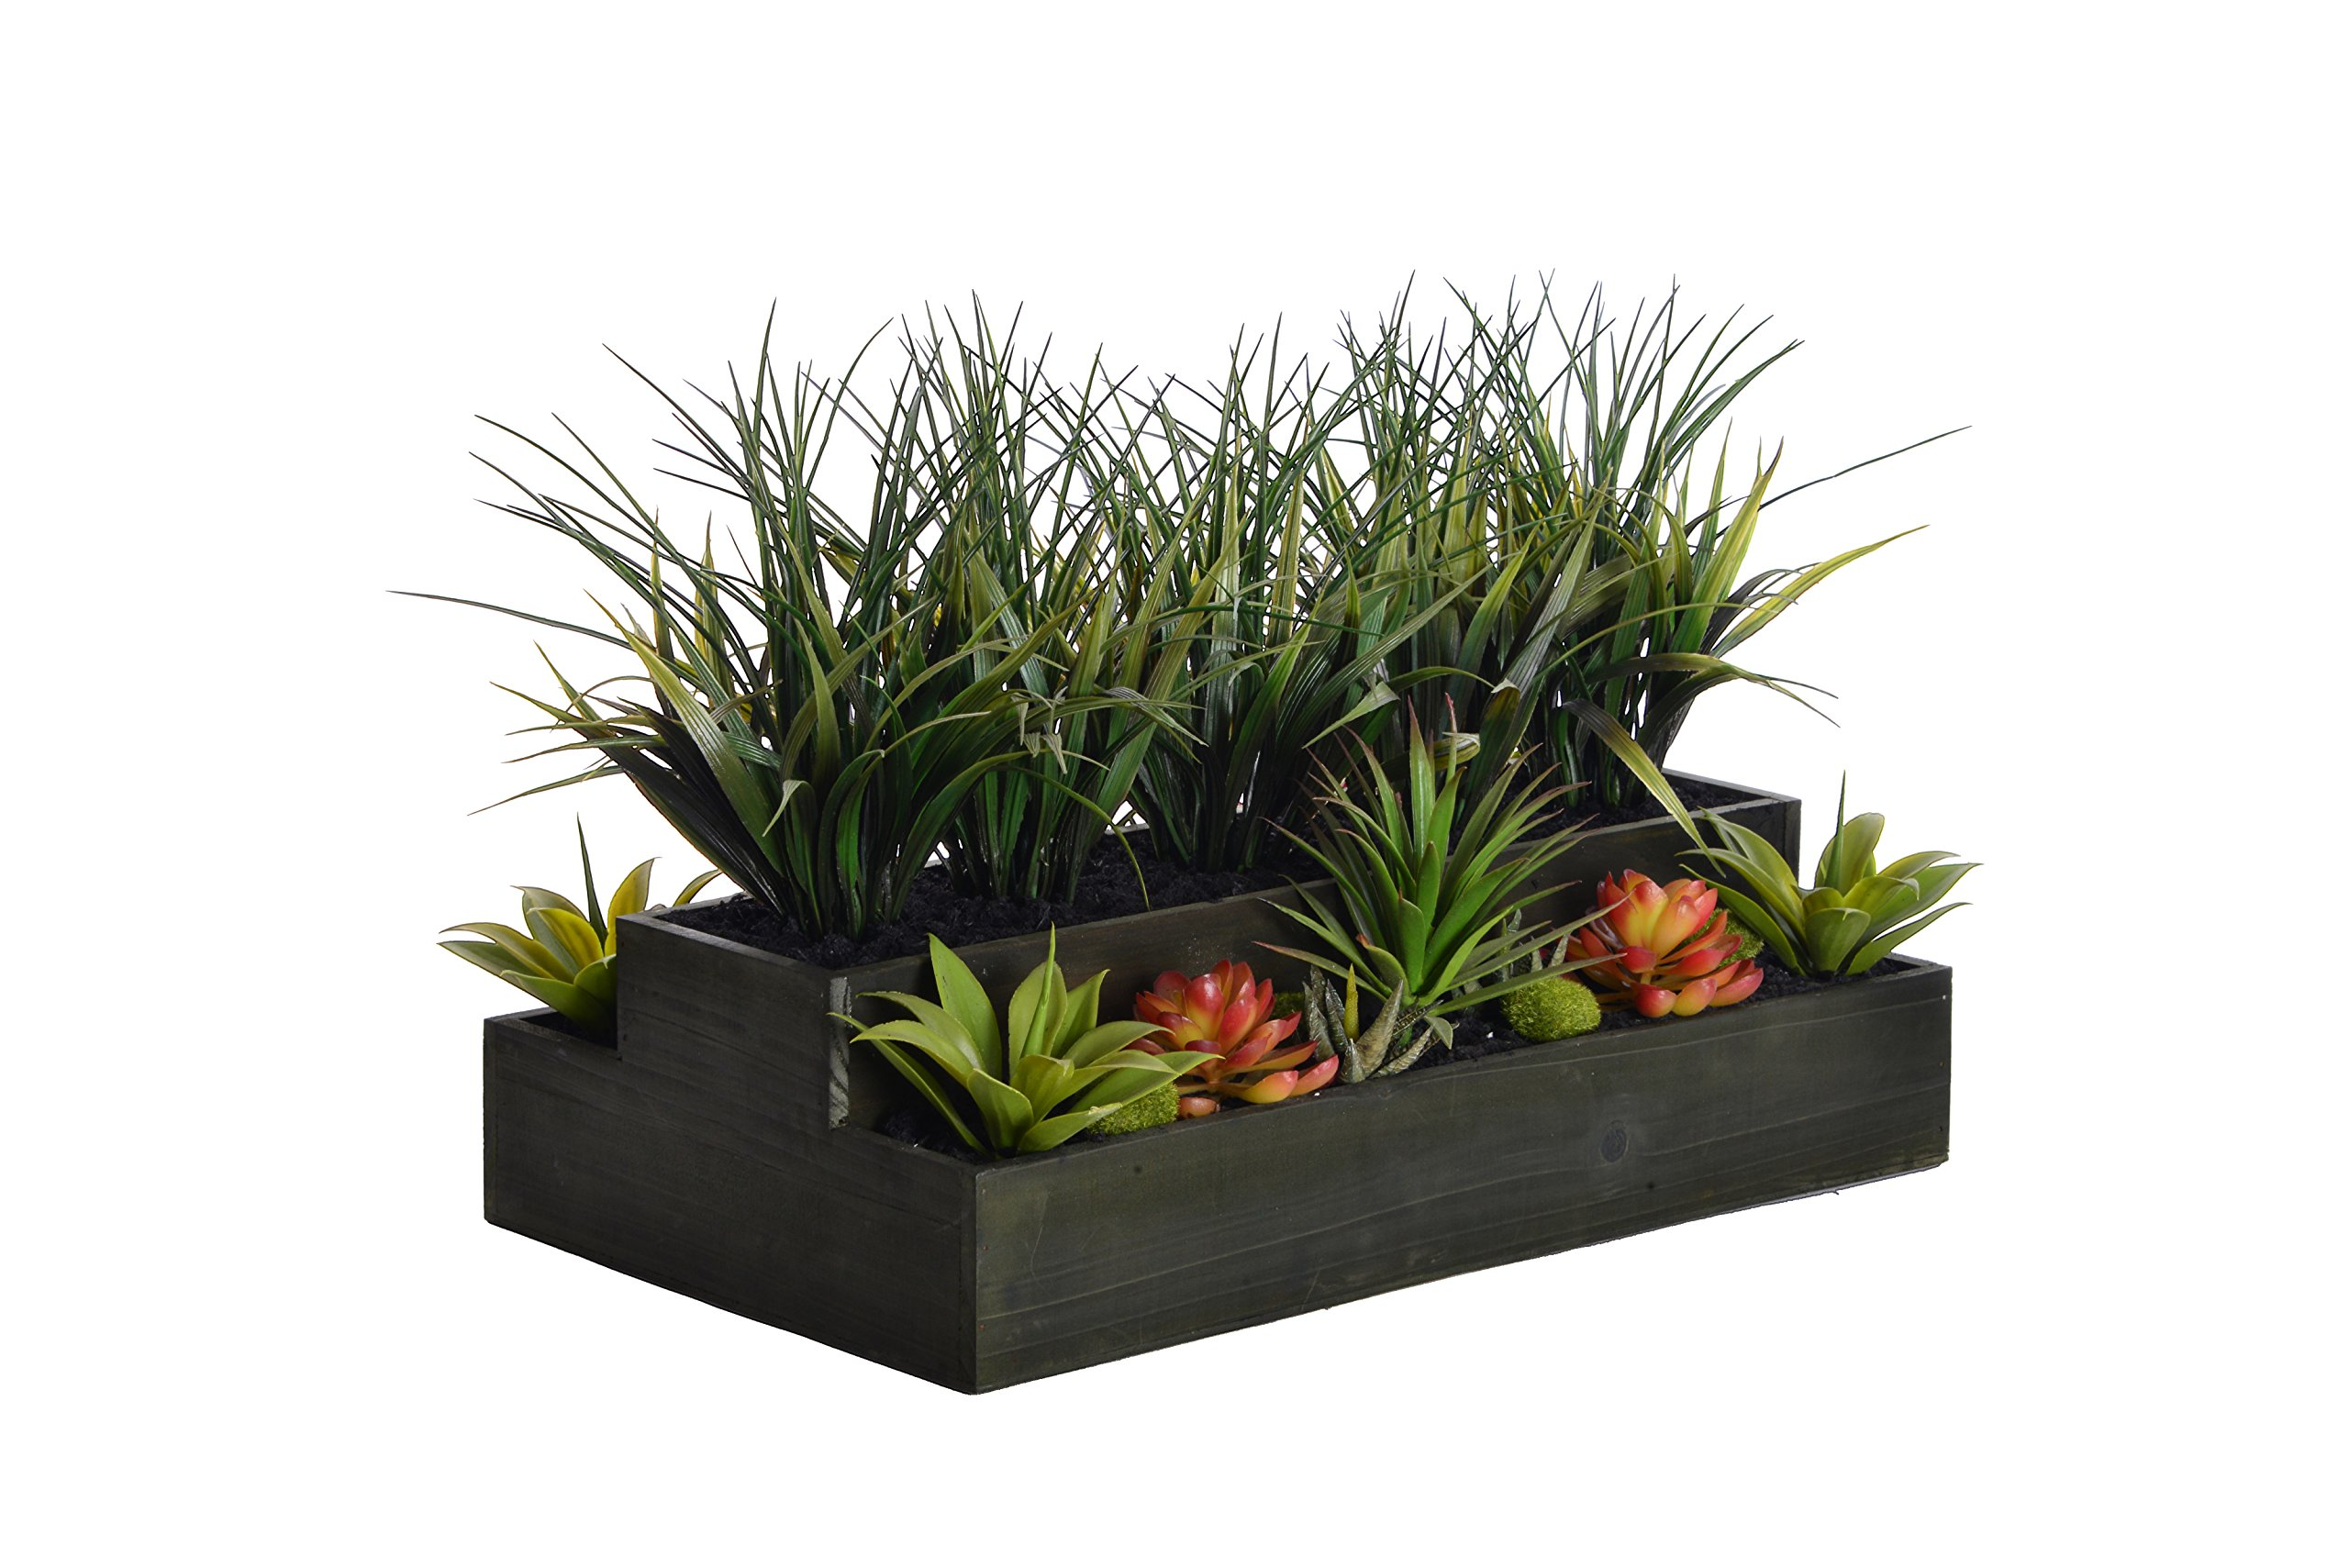 Laura Ashley VHA102440 Plastic Grass Wooden Pot, 26 by 13 by 14''